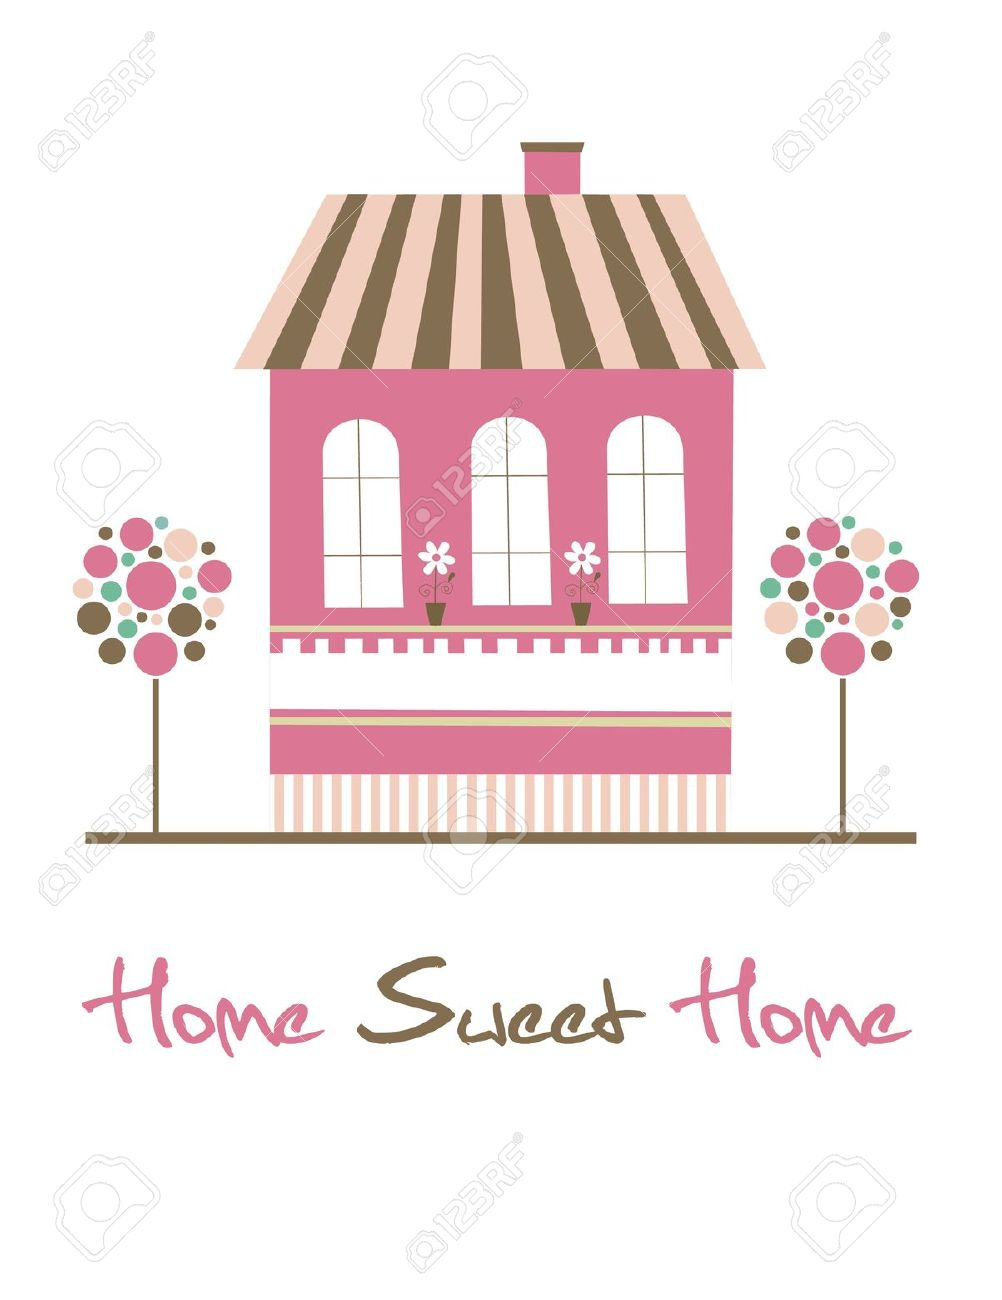 Home sweet home clipart house png free download Home Sweet Home Card Illustration Royalty Free Cliparts, Vectors ... png free download